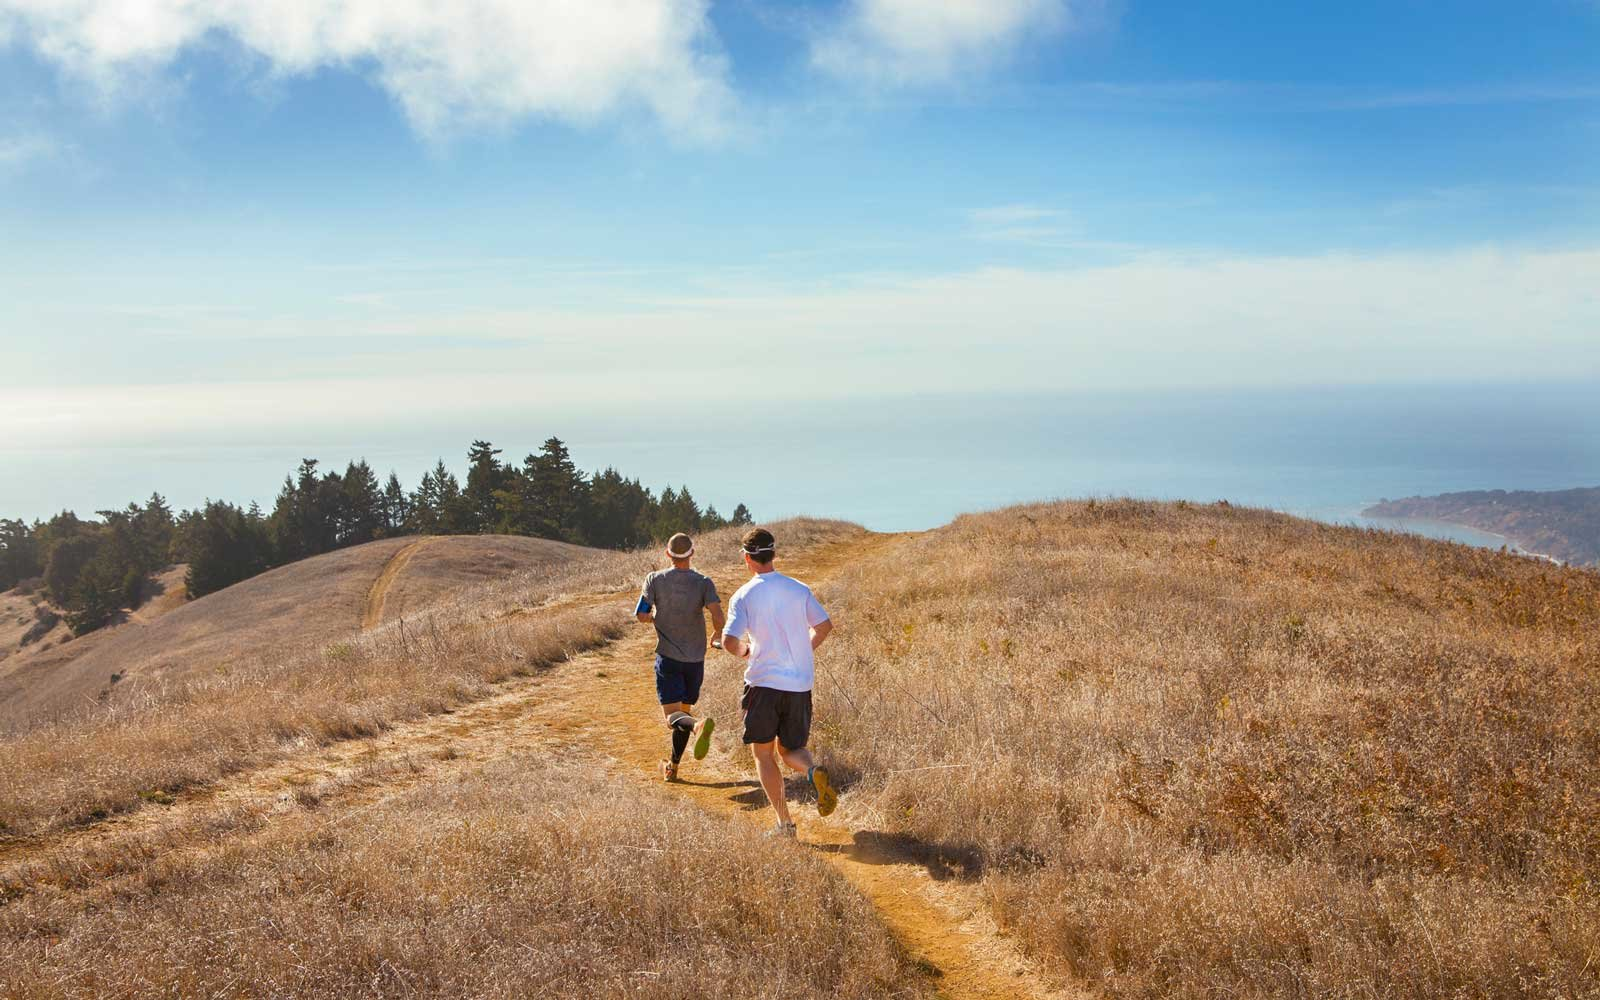 The Dipsea Race in Mill Valley, California